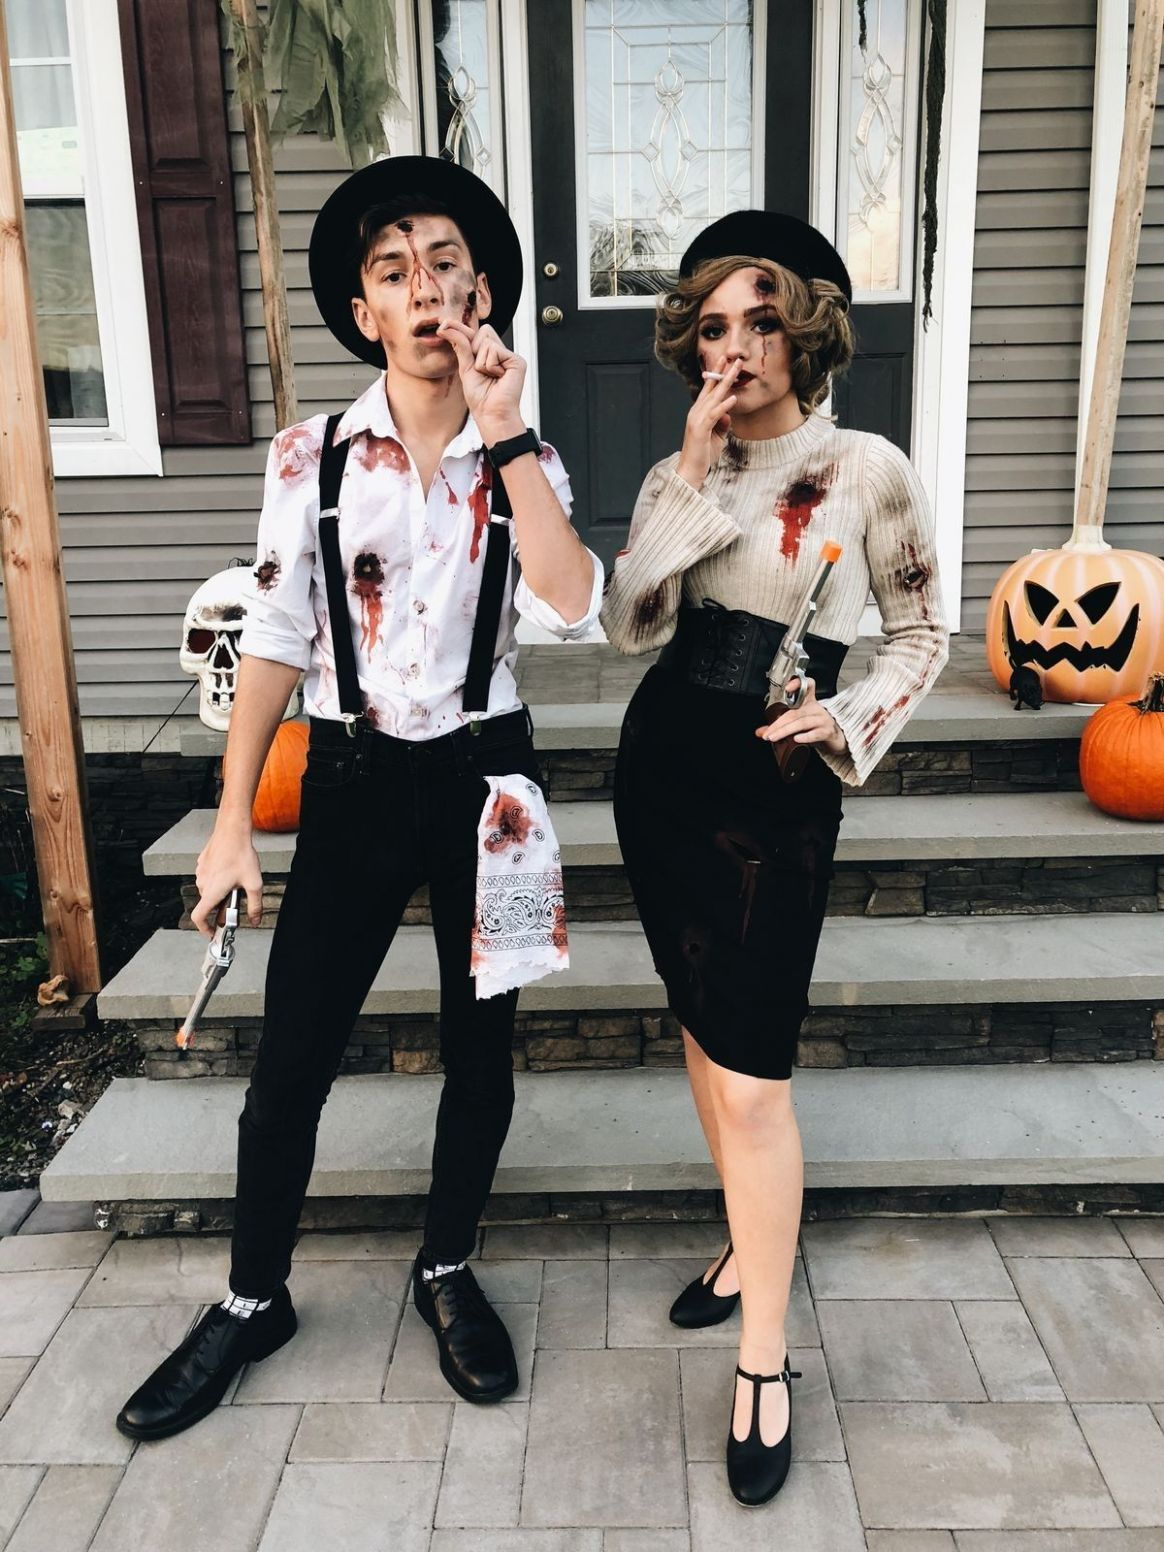 Bonnie and Clyde costumes | Halloween outfits, Holloween costume ..